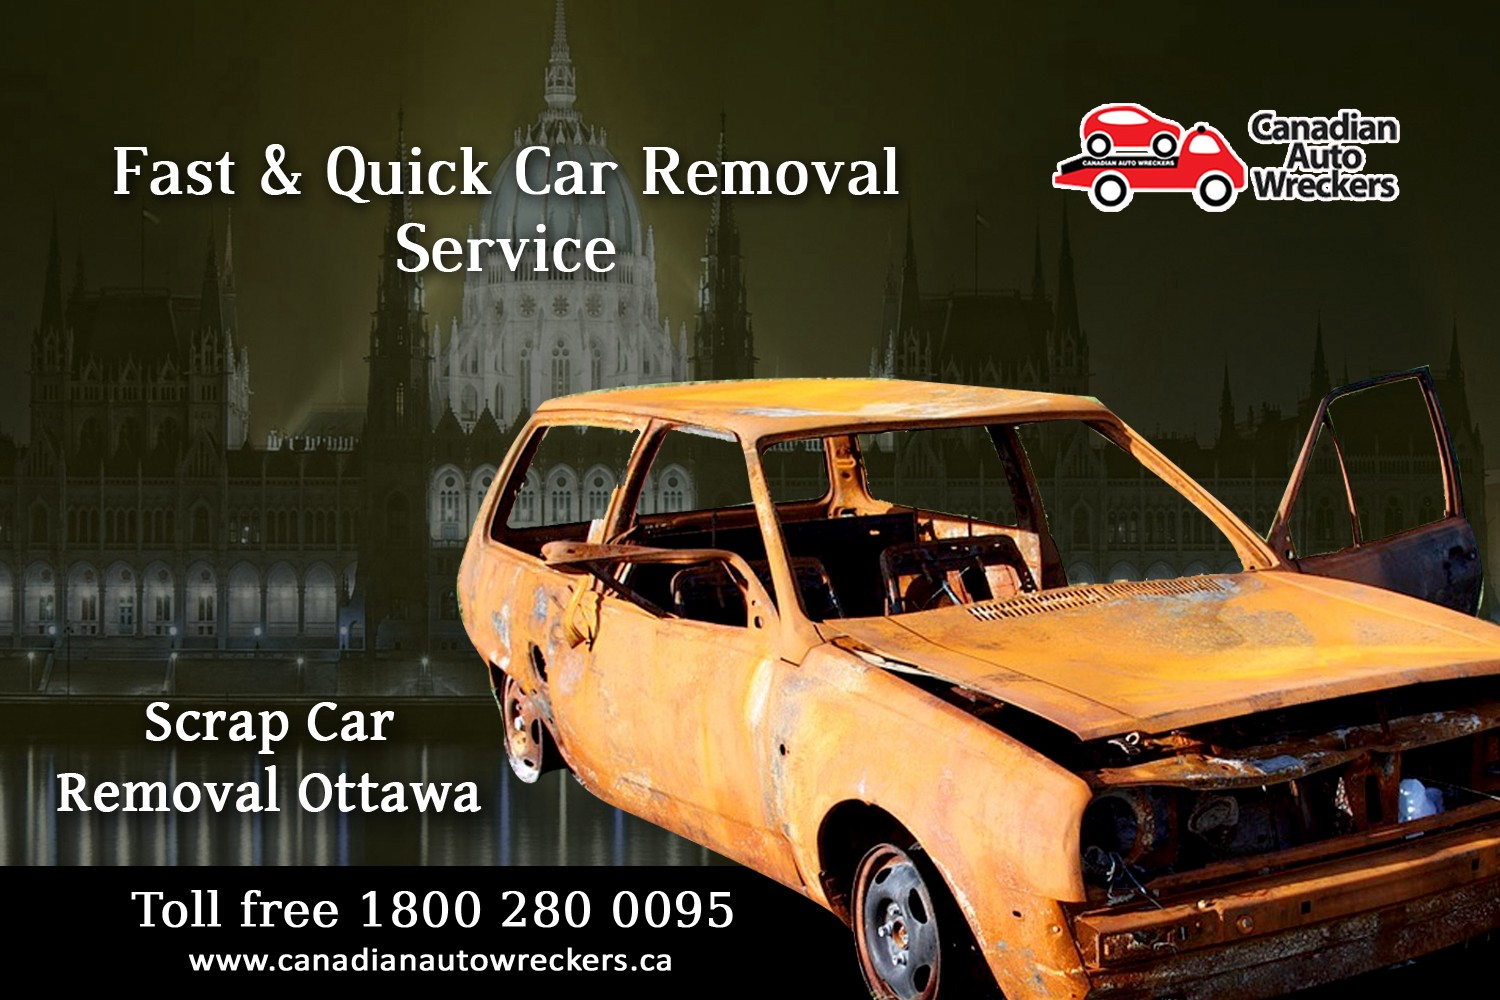 GET TOP CASH FOR YOUR SCRAP CARS — CANADIAN AUTO WRECKERS WILL BEAT ...